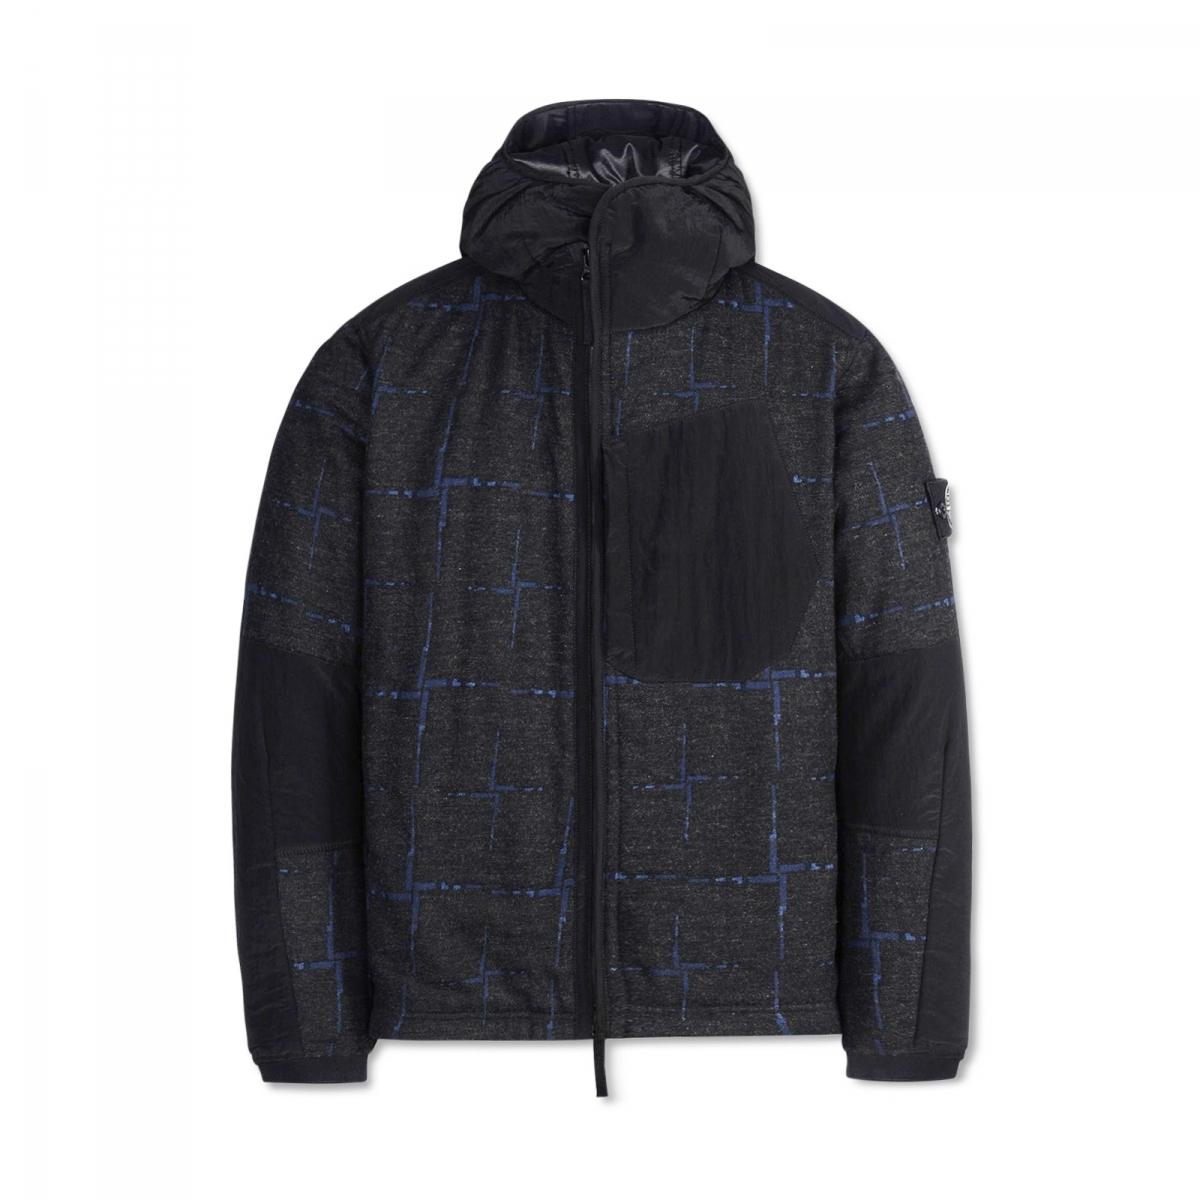 Lyst Stone Island Dormeuil House Check Jacket In Black